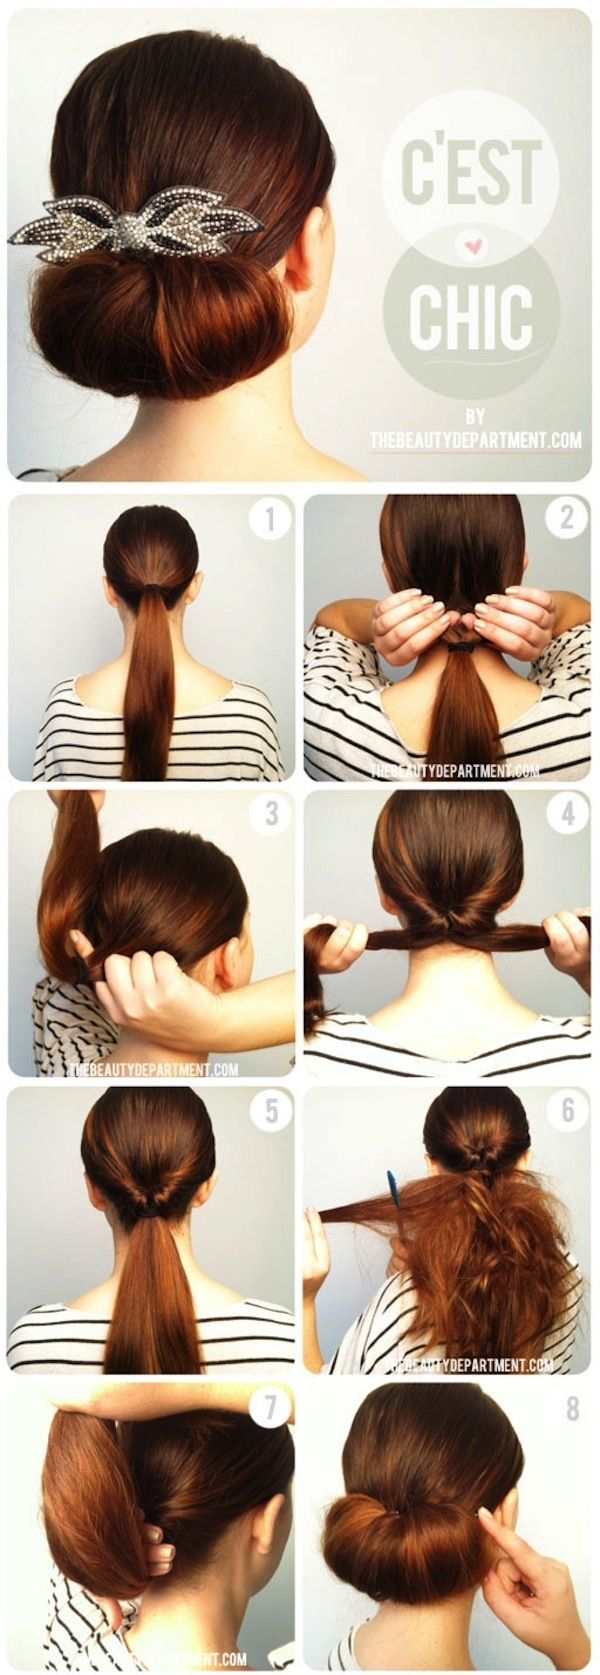 some great chignon styles, seems easy enough for a quick chic up do